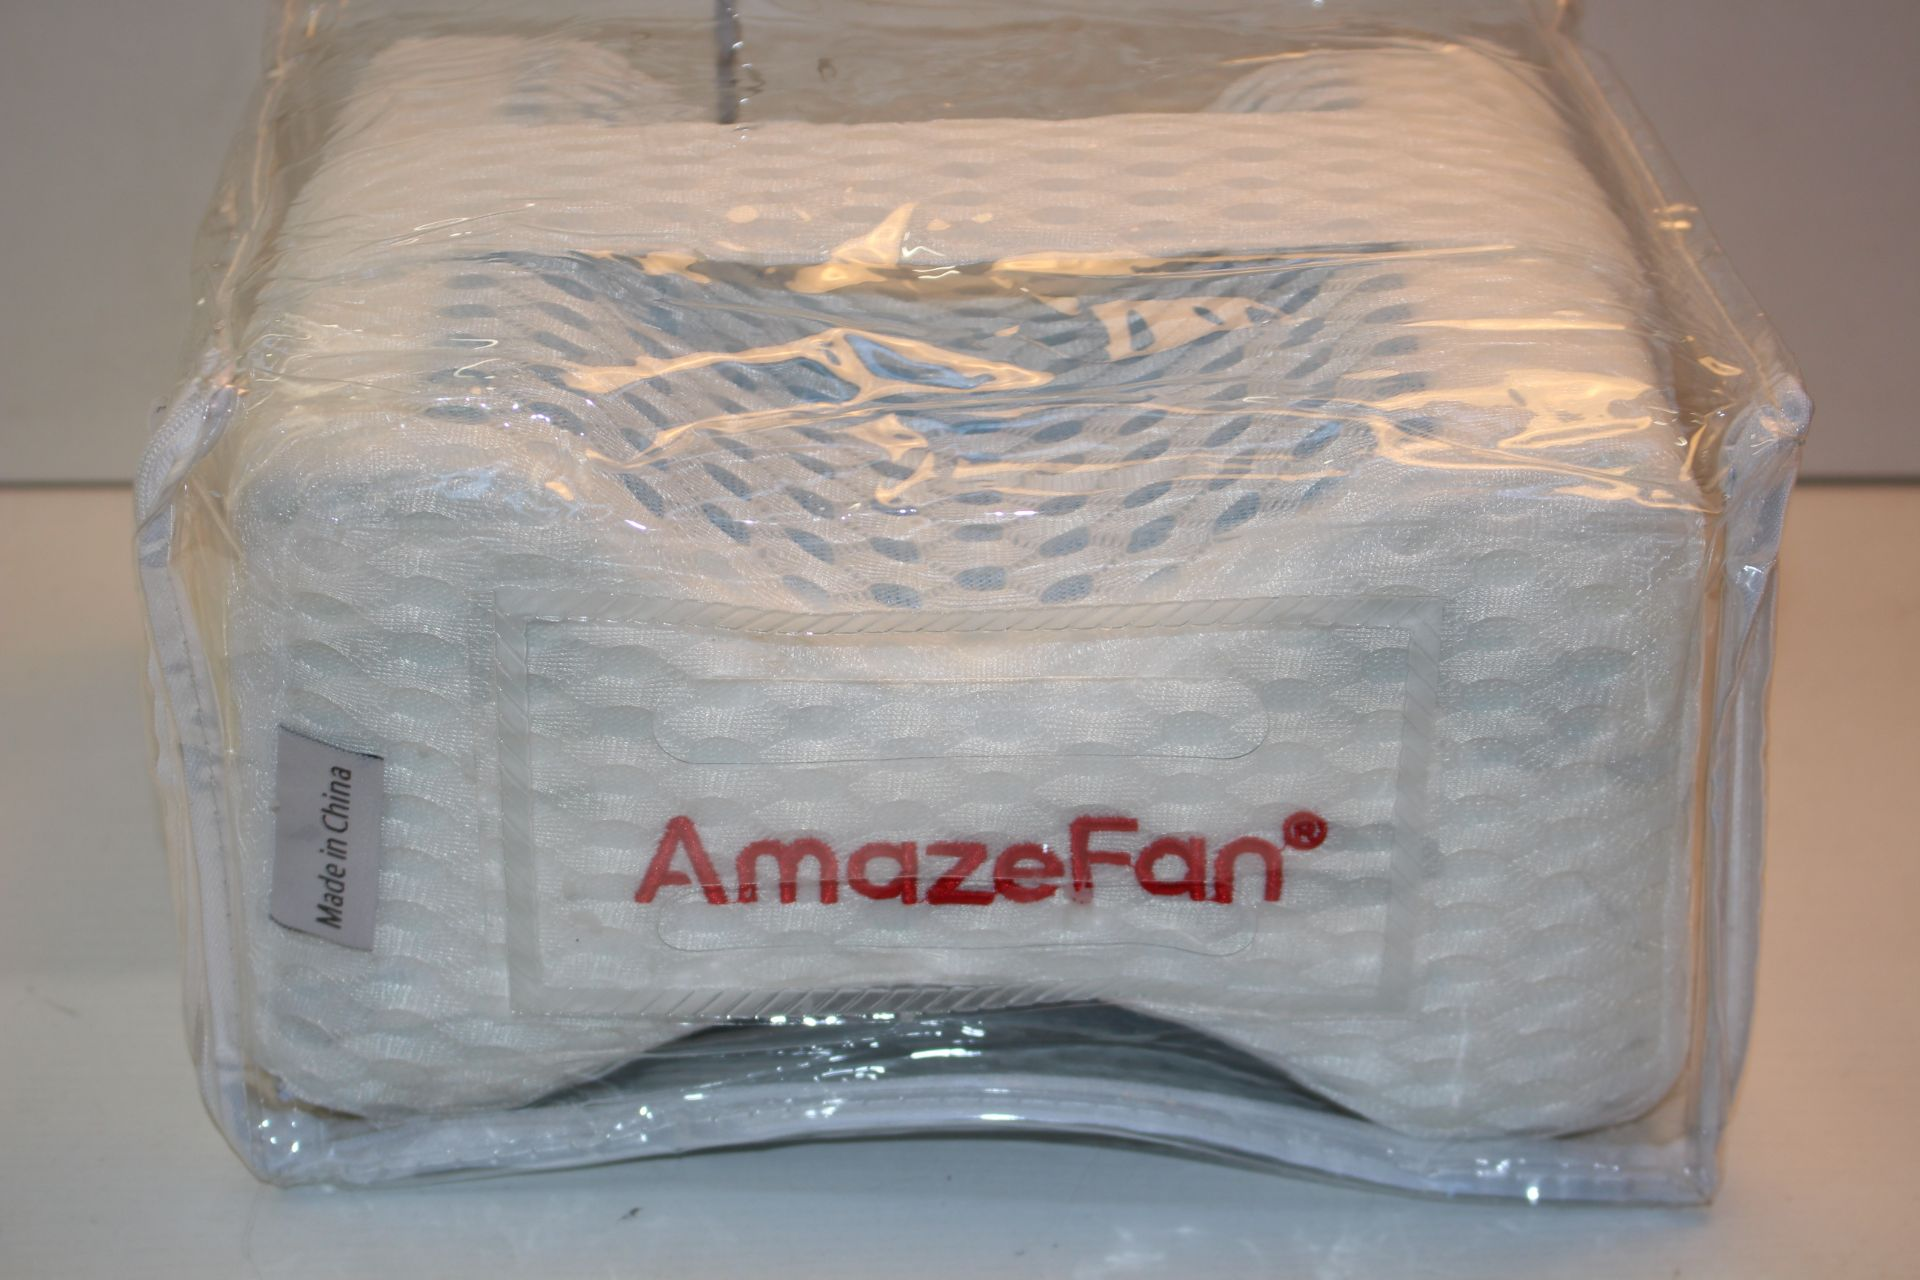 AMAZEFAN MEMORY FOASM CUSHION Condition ReportAppraisal Available on Request- All Items are